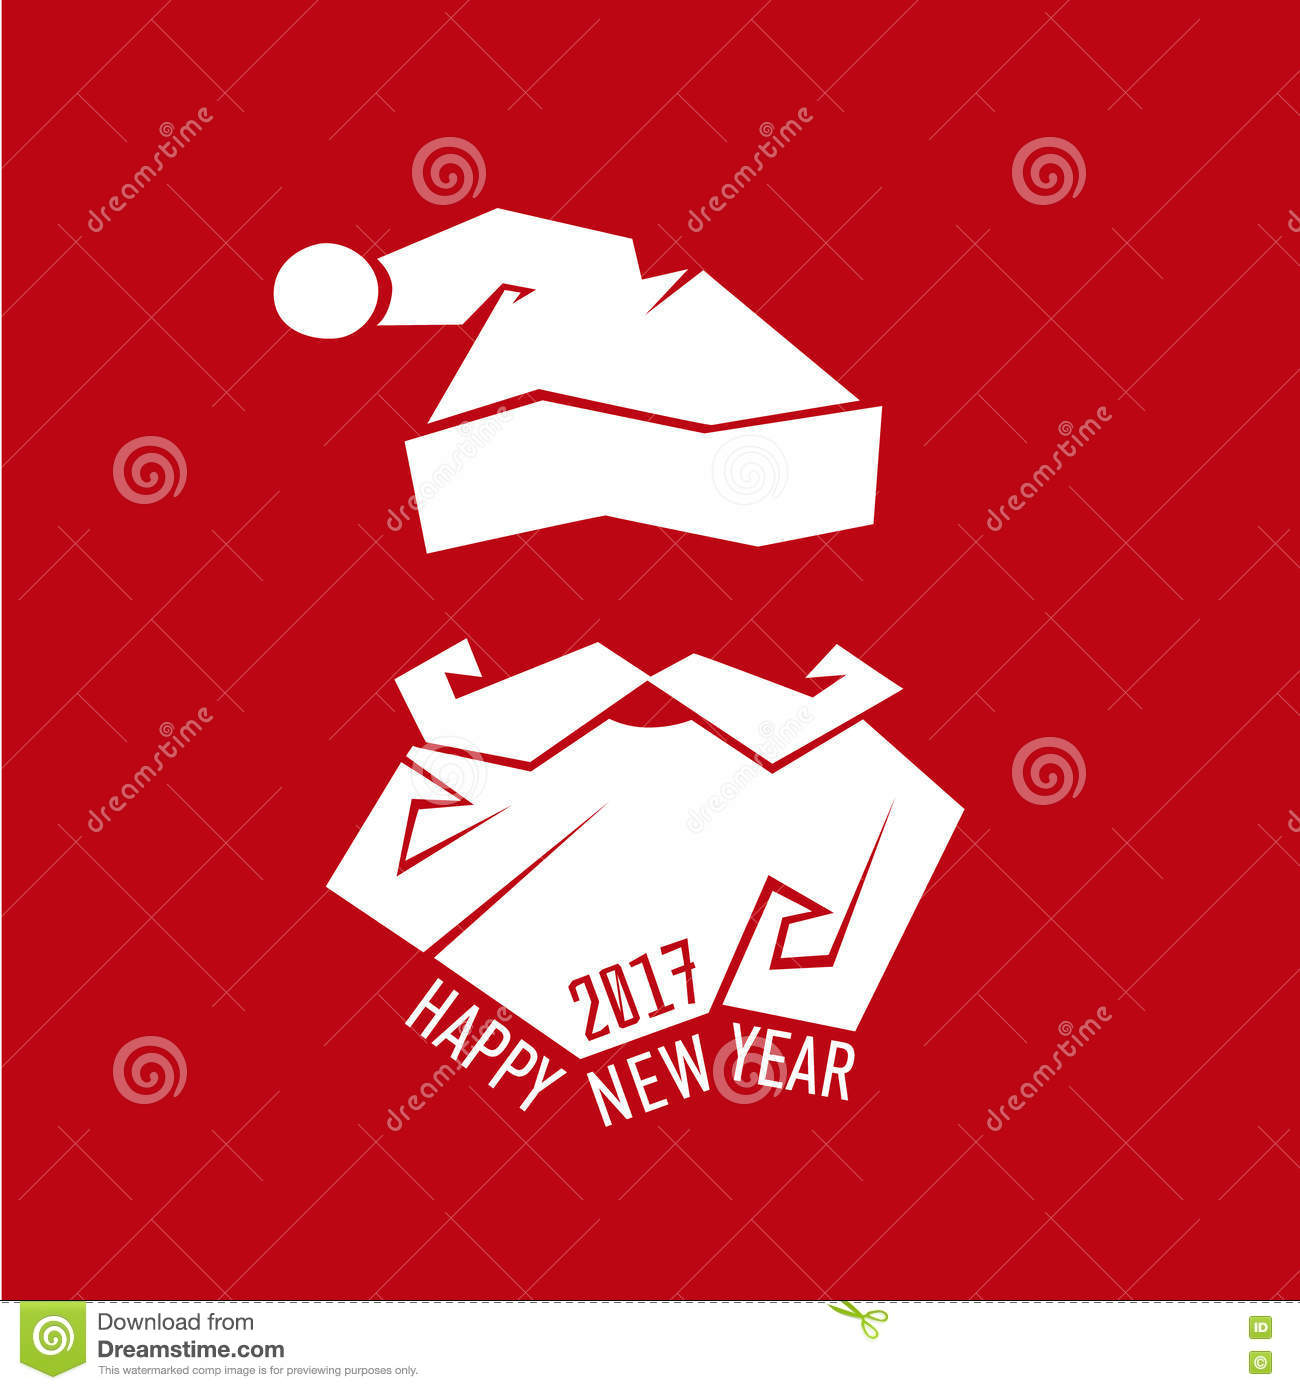 Santa claus hat and beard christmas new year card vector stock santa claus hat and beard template christmas new year greeting card santa claus vector illustration maxwellsz